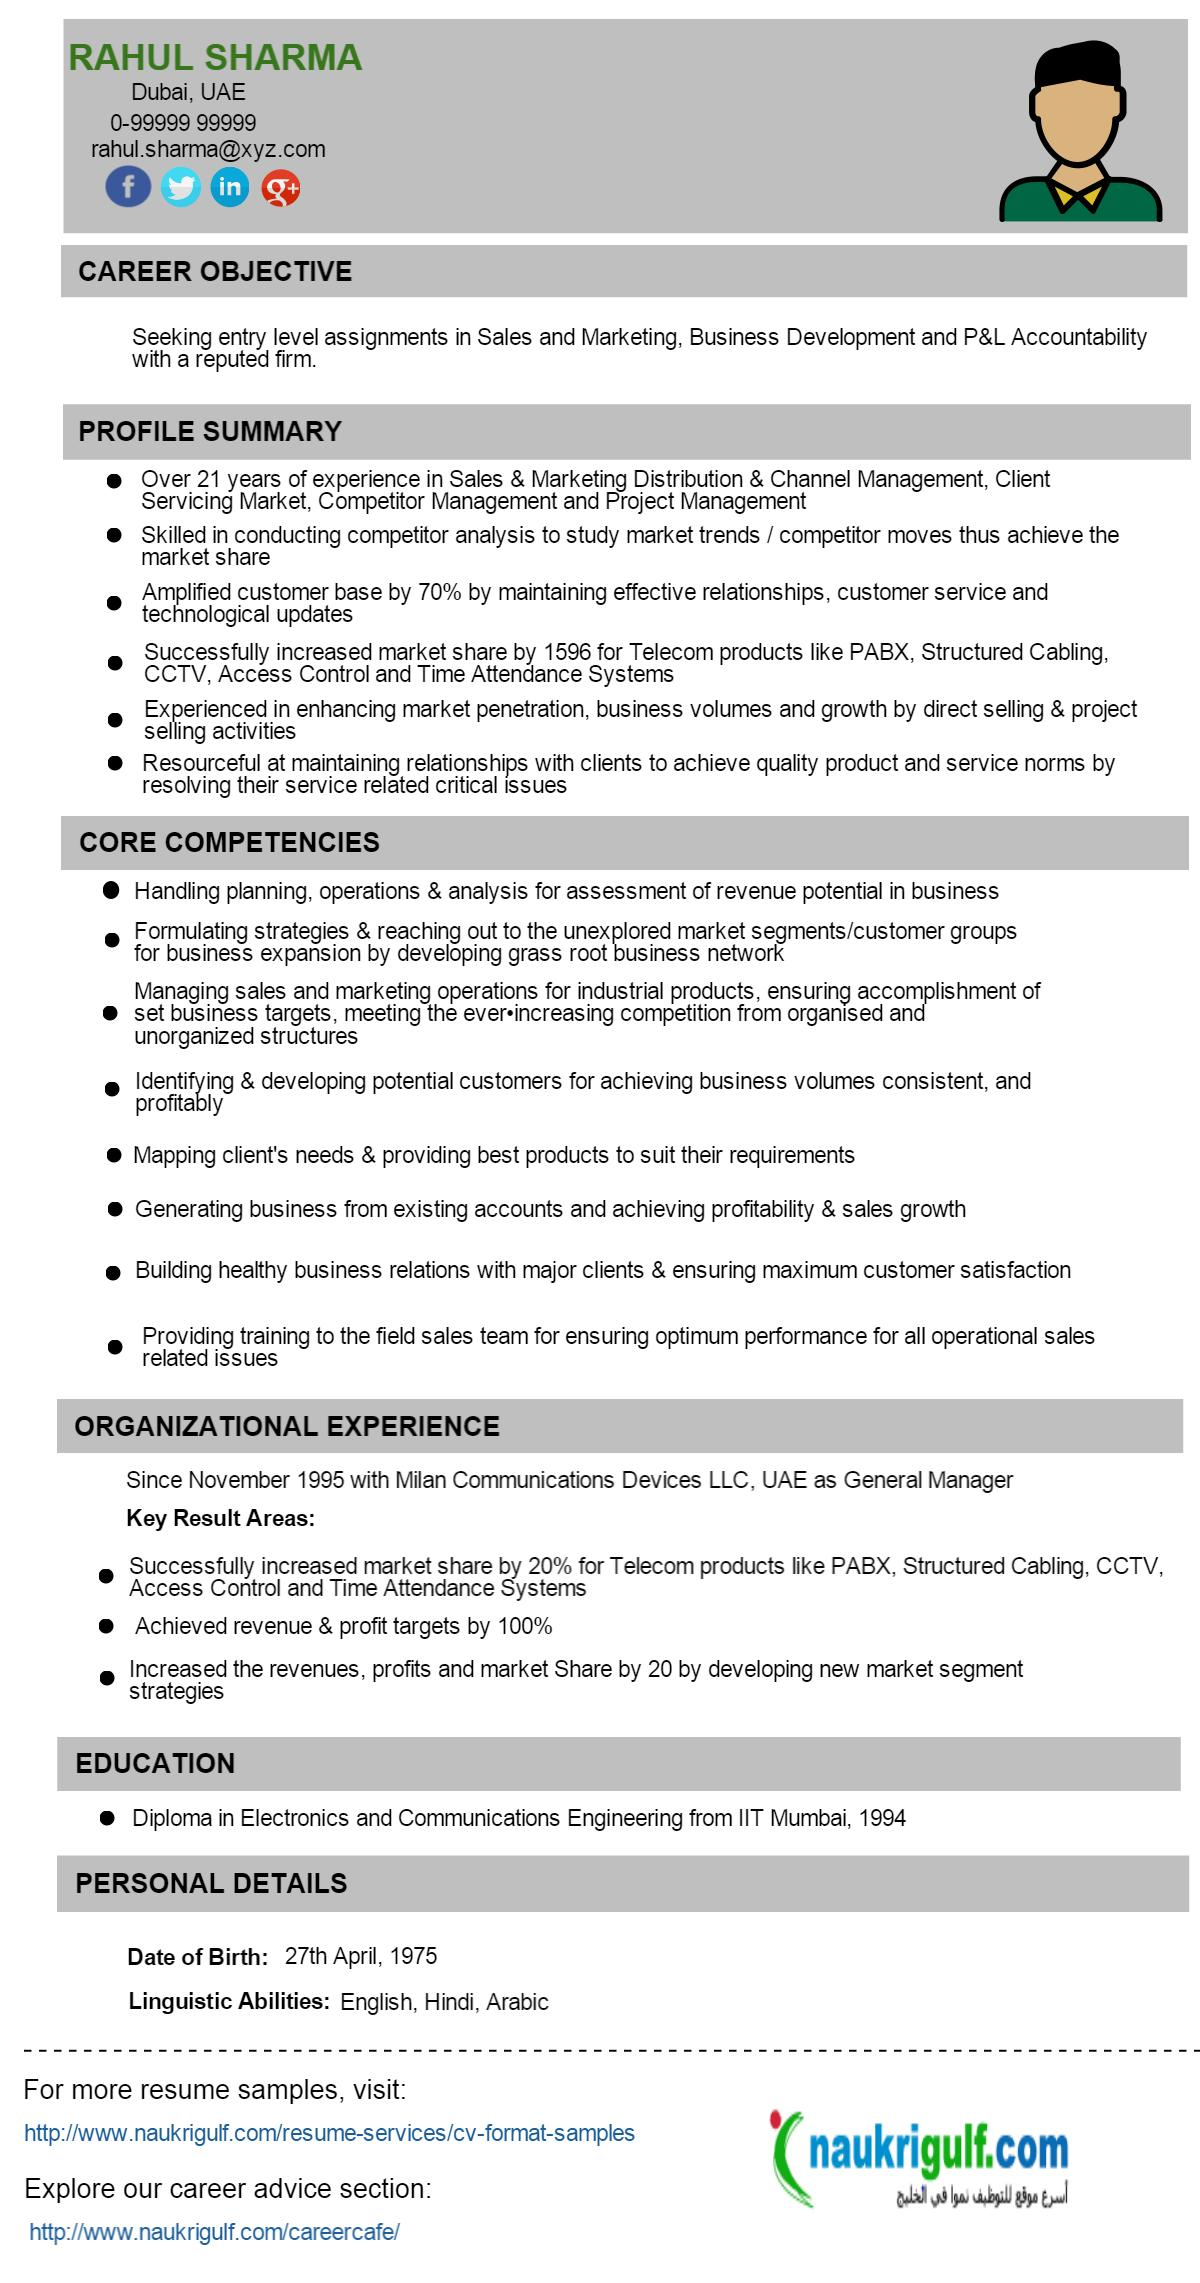 Microbiology Cover Letter Examples Embo Journal Cover Letter Essay